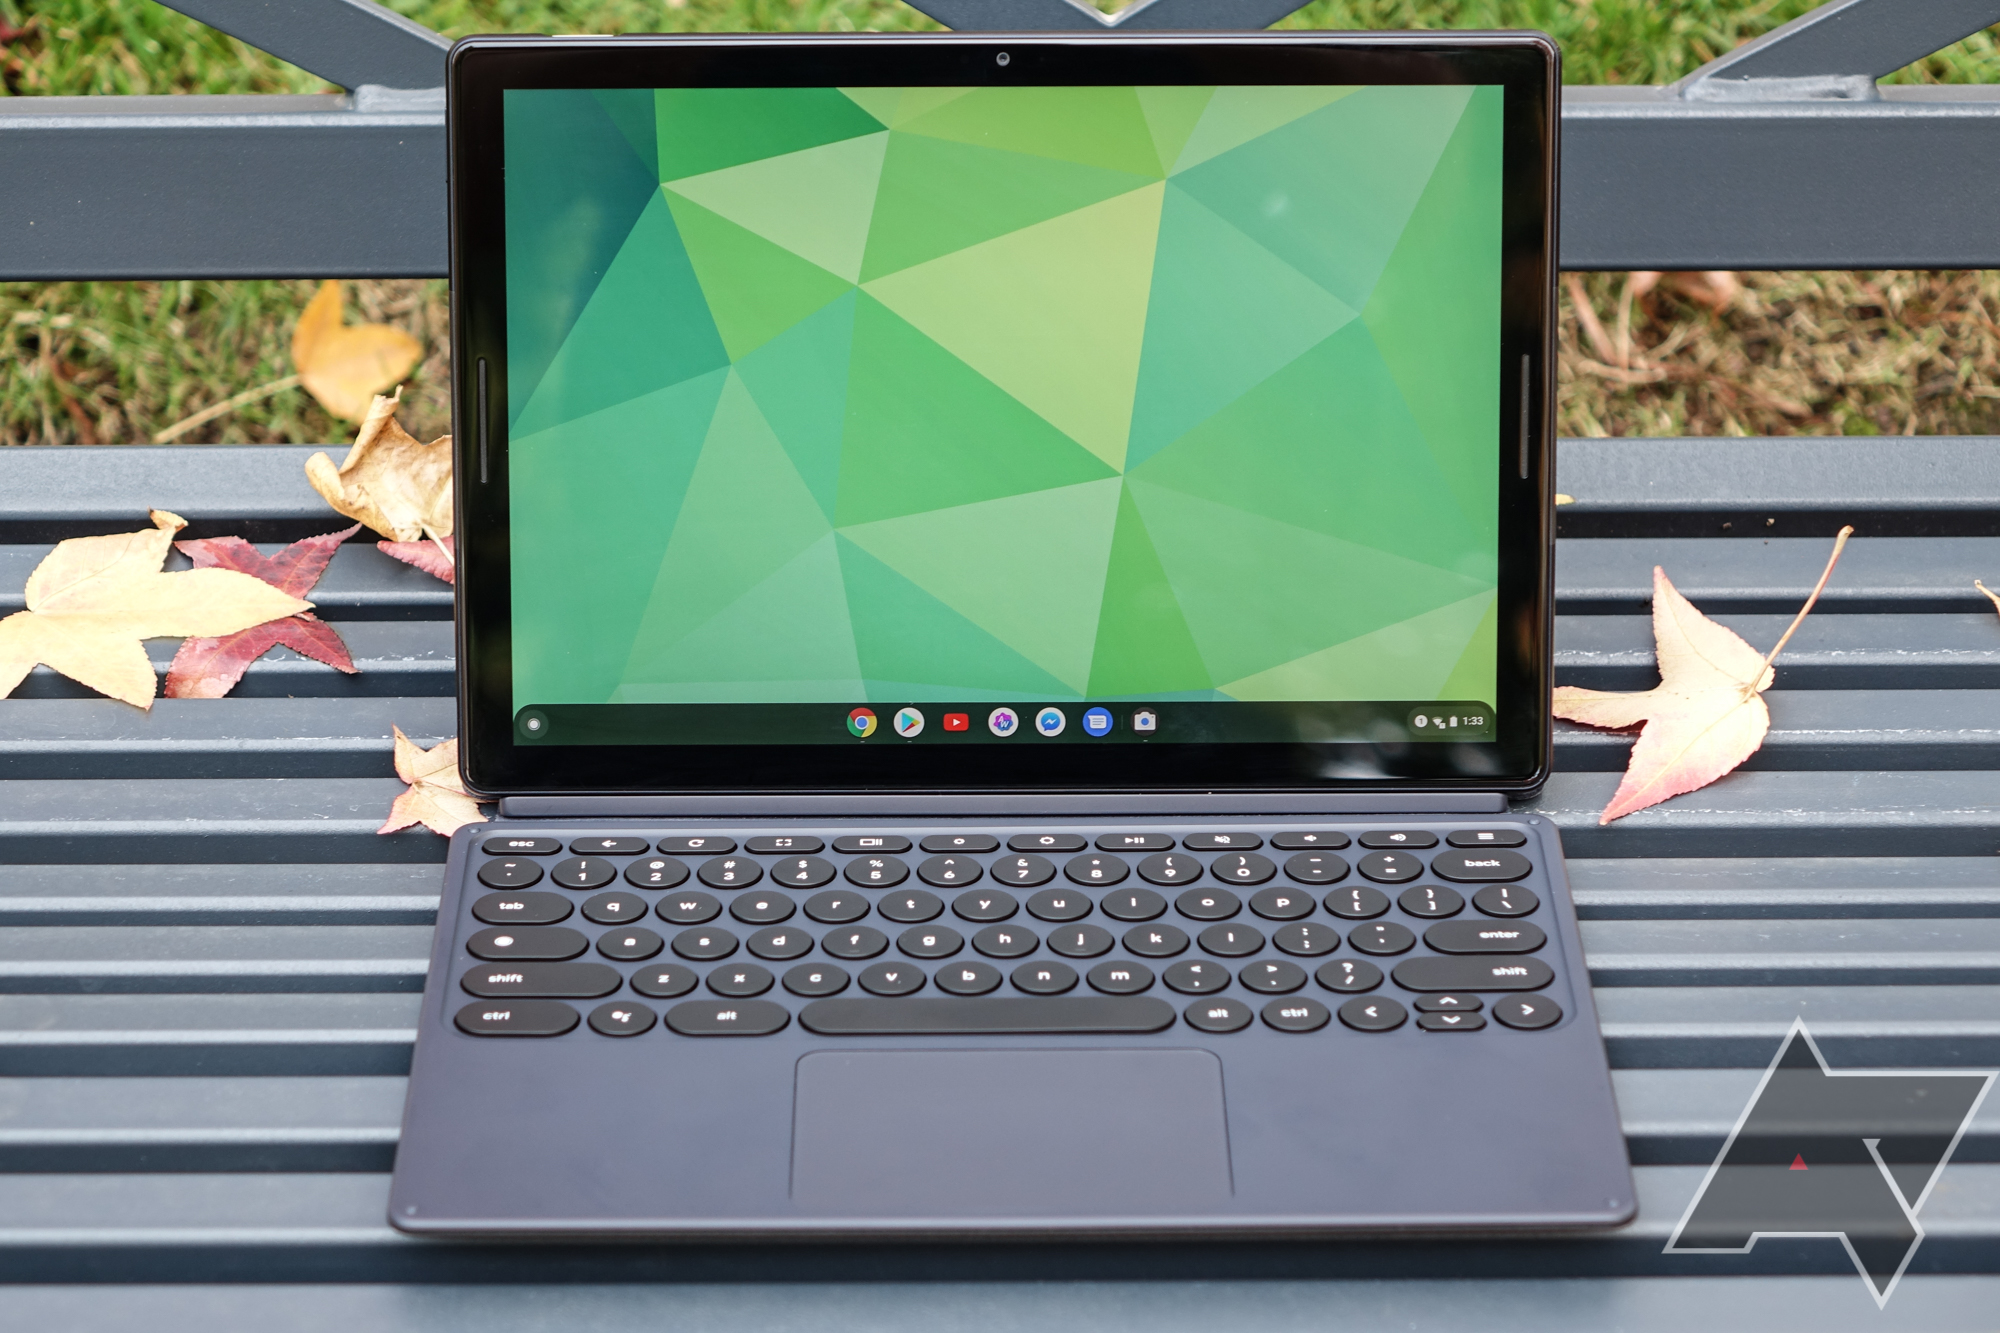 All models of the Pixel Slate are back to Black Friday prices ($350 off), includes free keyboard and pen